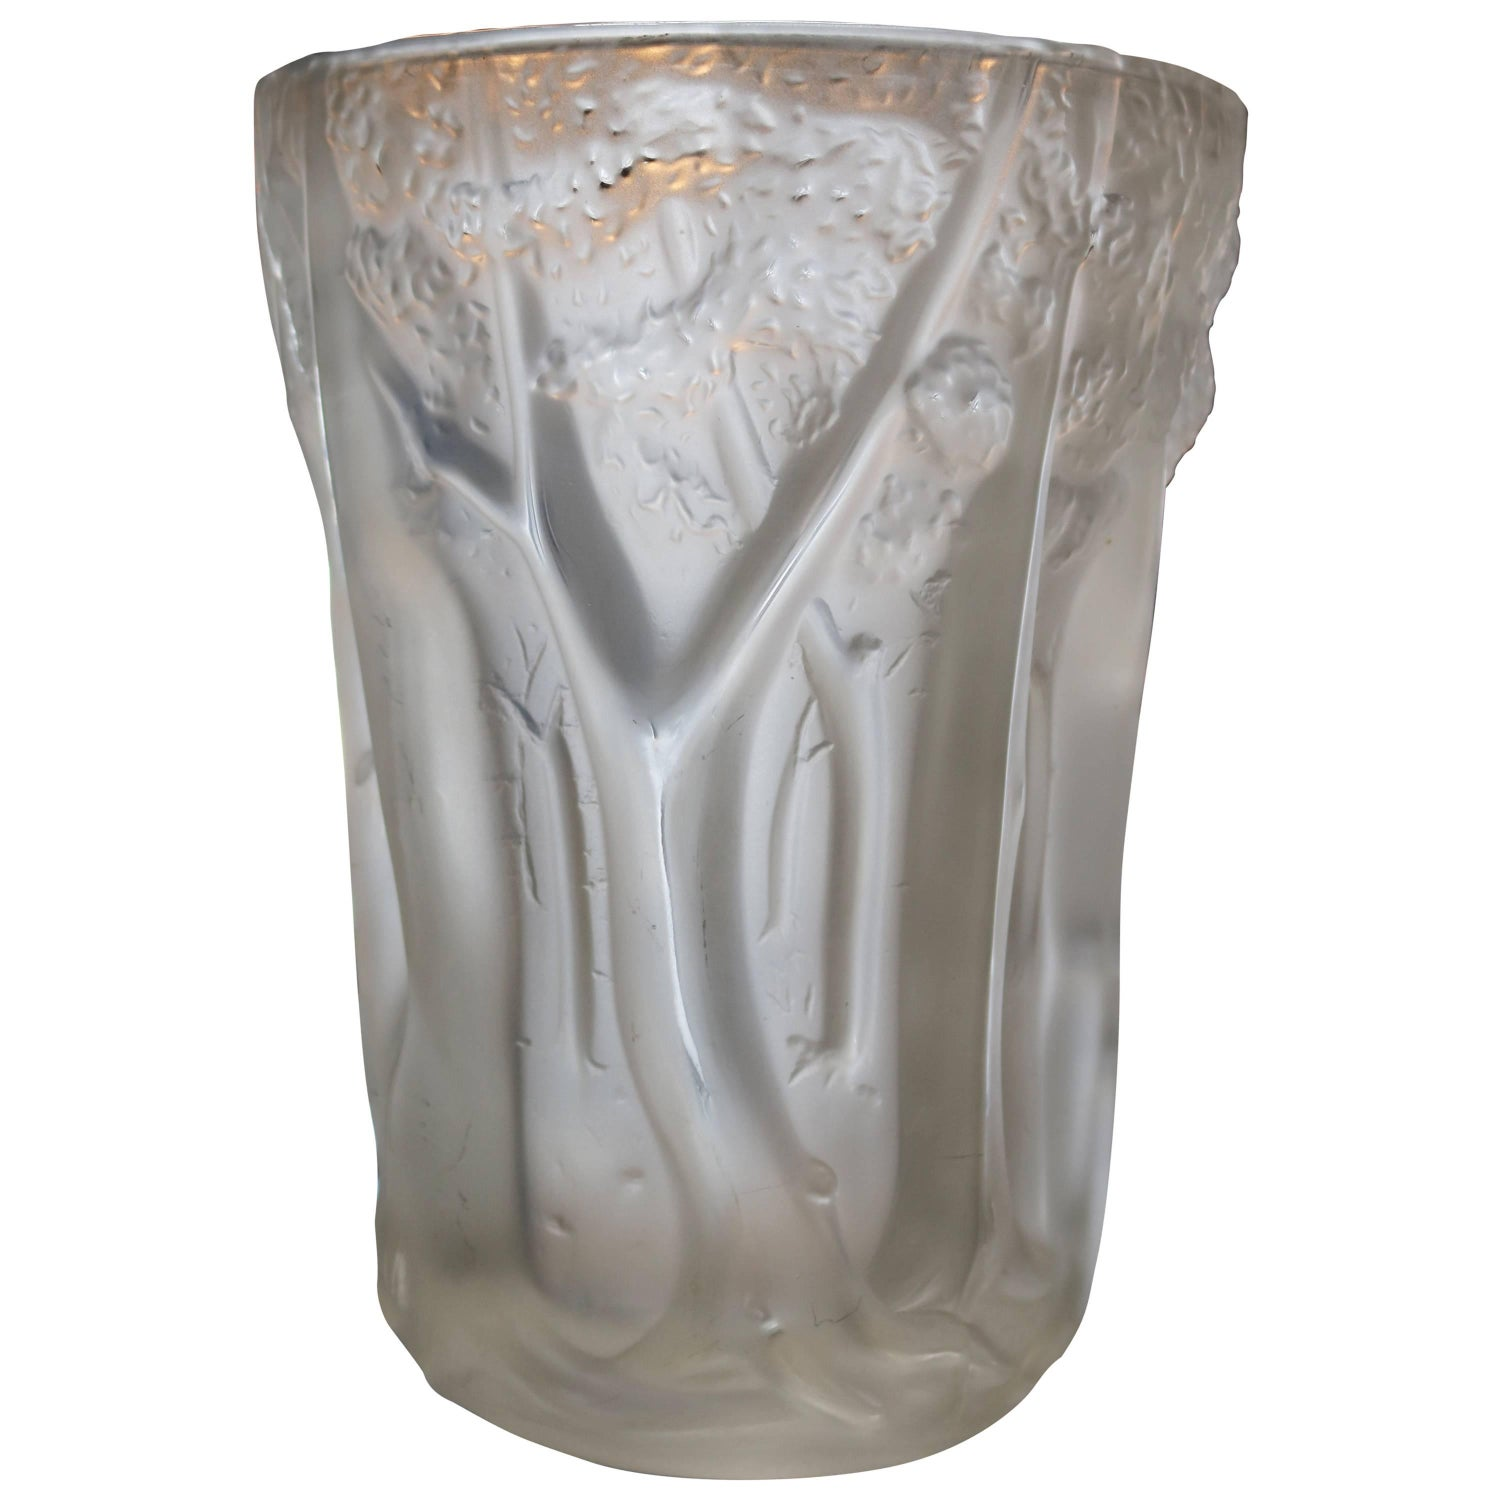 Frosted molded glass vase with forest scene in relief for sale at frosted molded glass vase with forest scene in relief for sale at 1stdibs reviewsmspy